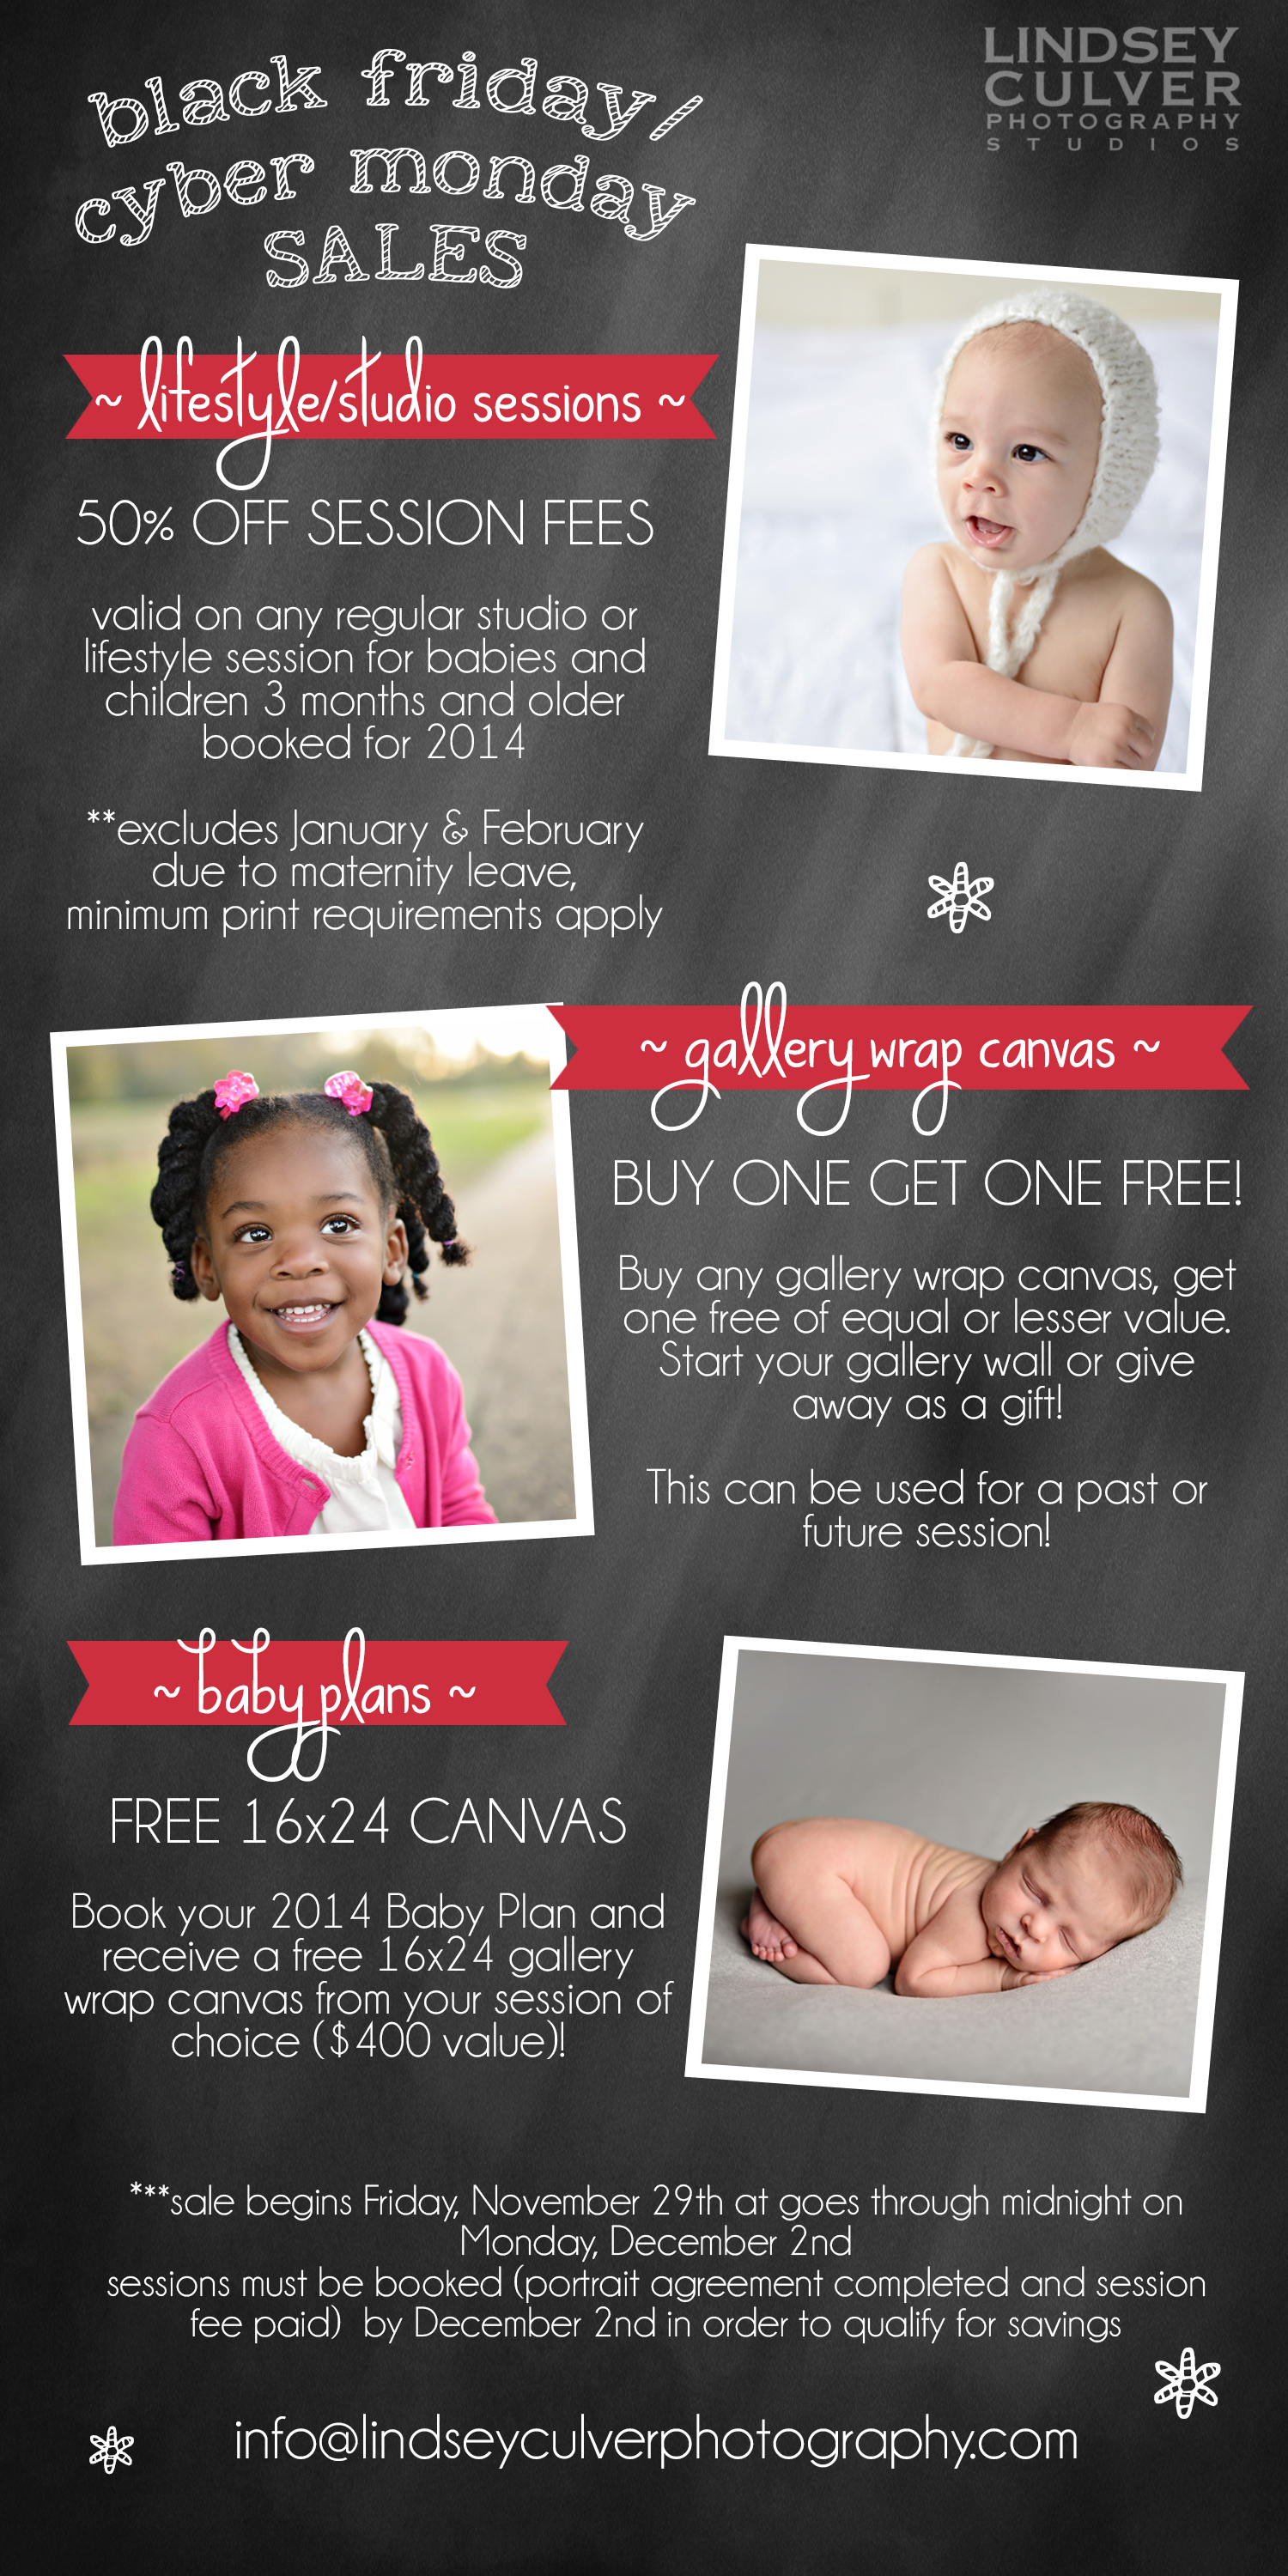 Black Friday Cyber Monday Specials Lindsey Culver Photography Birmingham Al Baby Photographer Lindsey Culver Photography Studios Birmingham Al Newborn Baby Child And Family Photographer